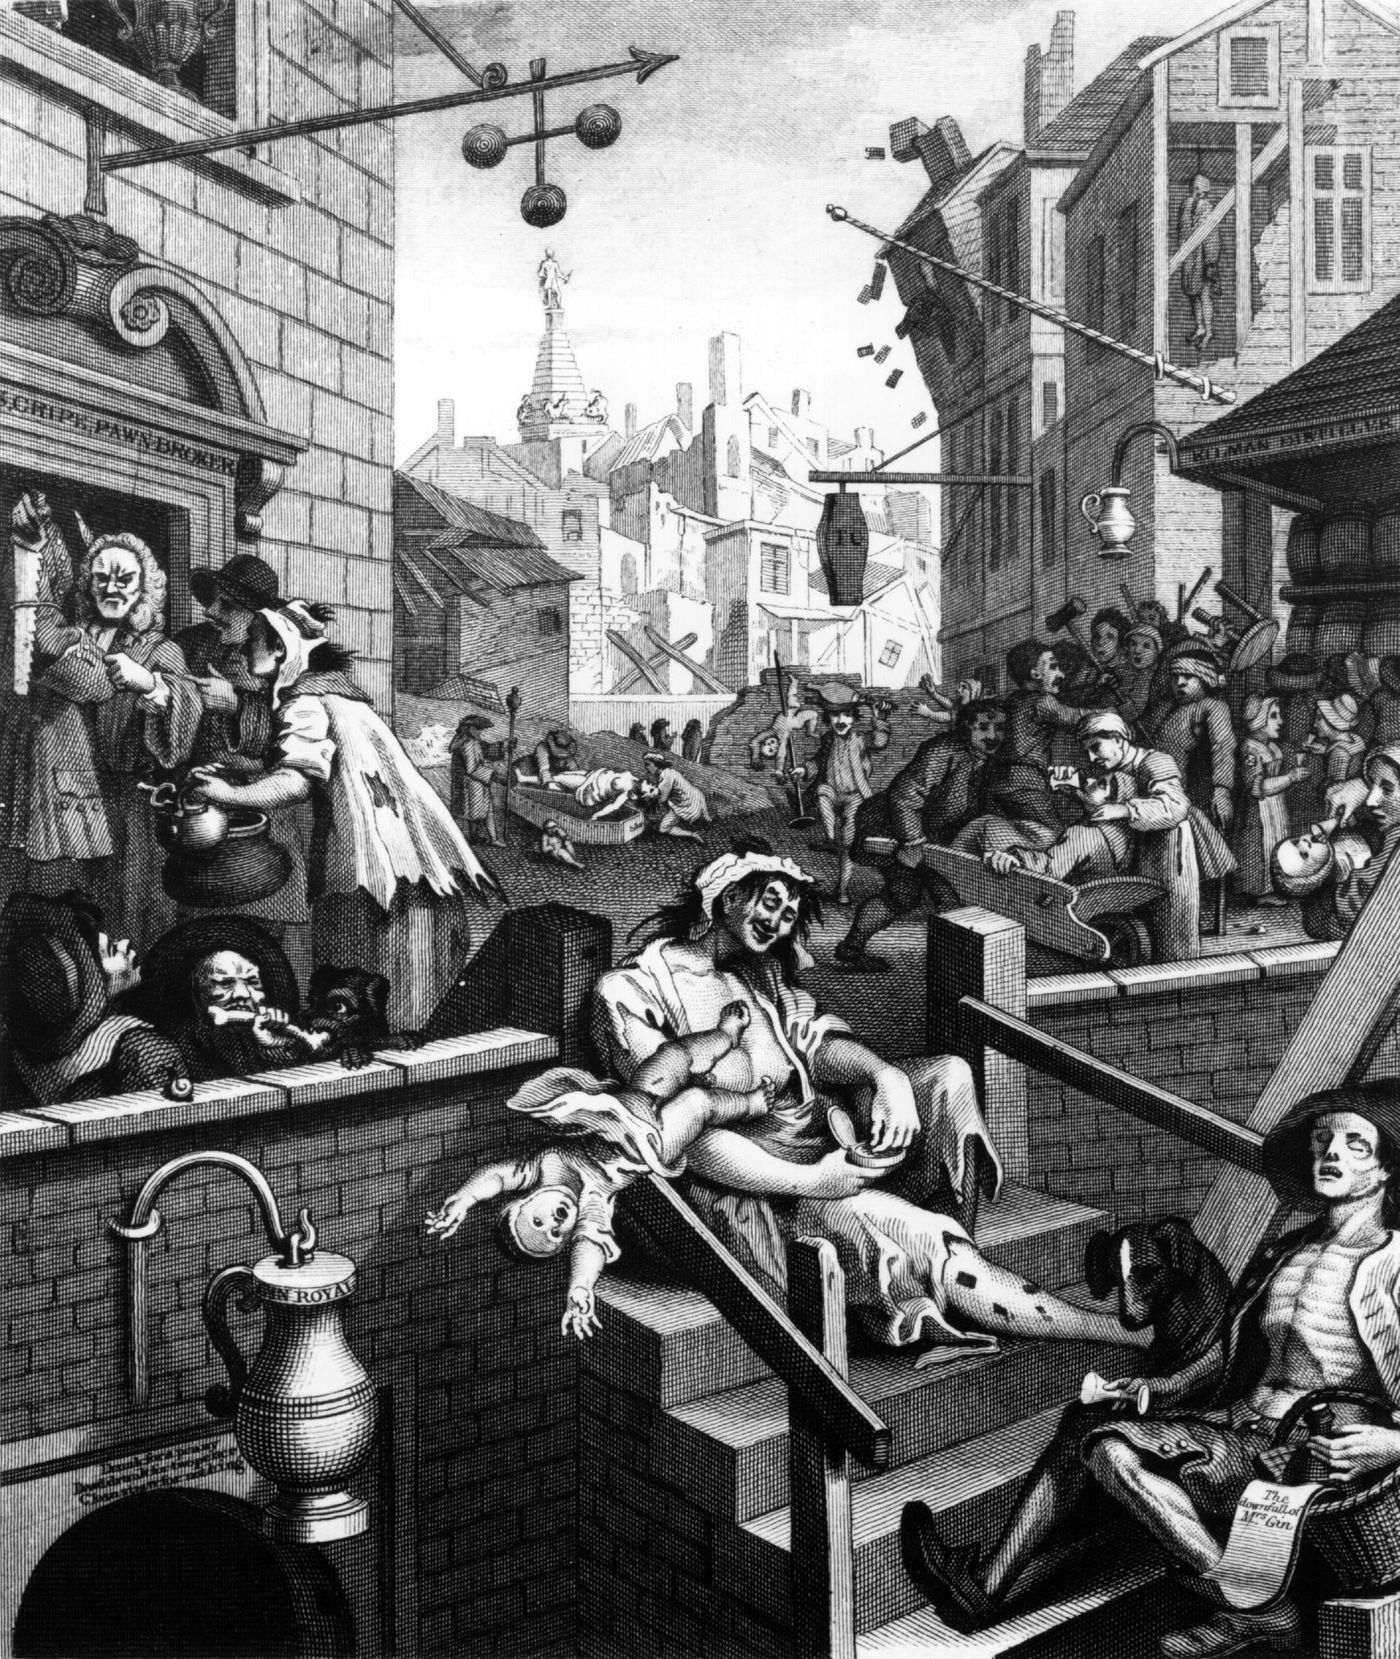 """From medieval medicine to 18th century English """"crack,"""" gin has come a long way. But according to Richard Barnett, author of The Book of Gin, now is """"the best time in the last 500 years to be drinking"""" it."""